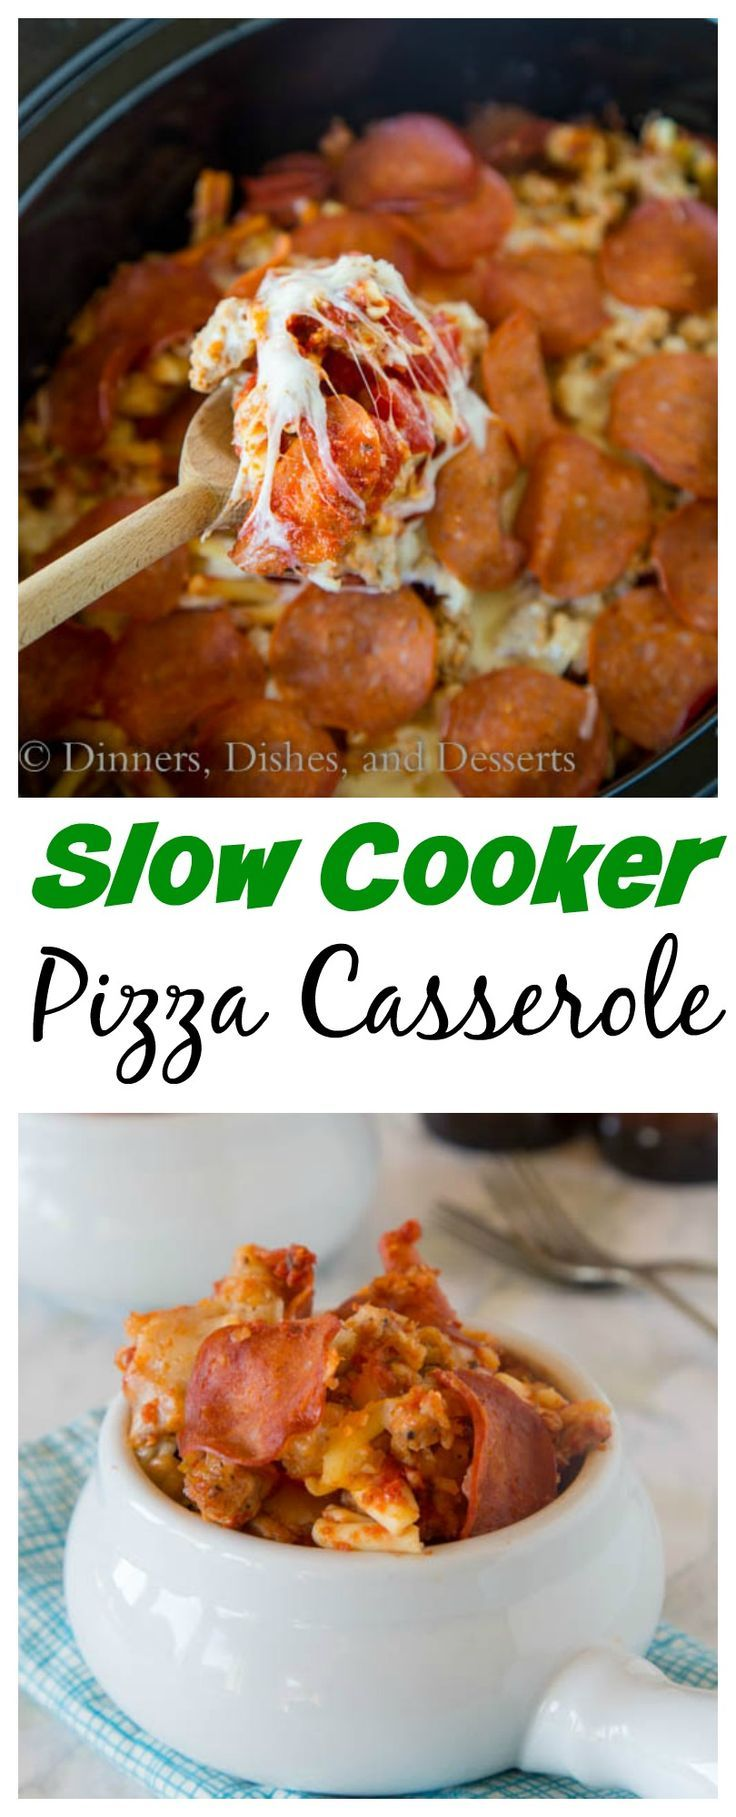 Slow Cooker Pizza Casserole – Who doesn't love pizza?  Turn it into a pasta casserole you can make in your crock pot. Dinner the whole family will love!